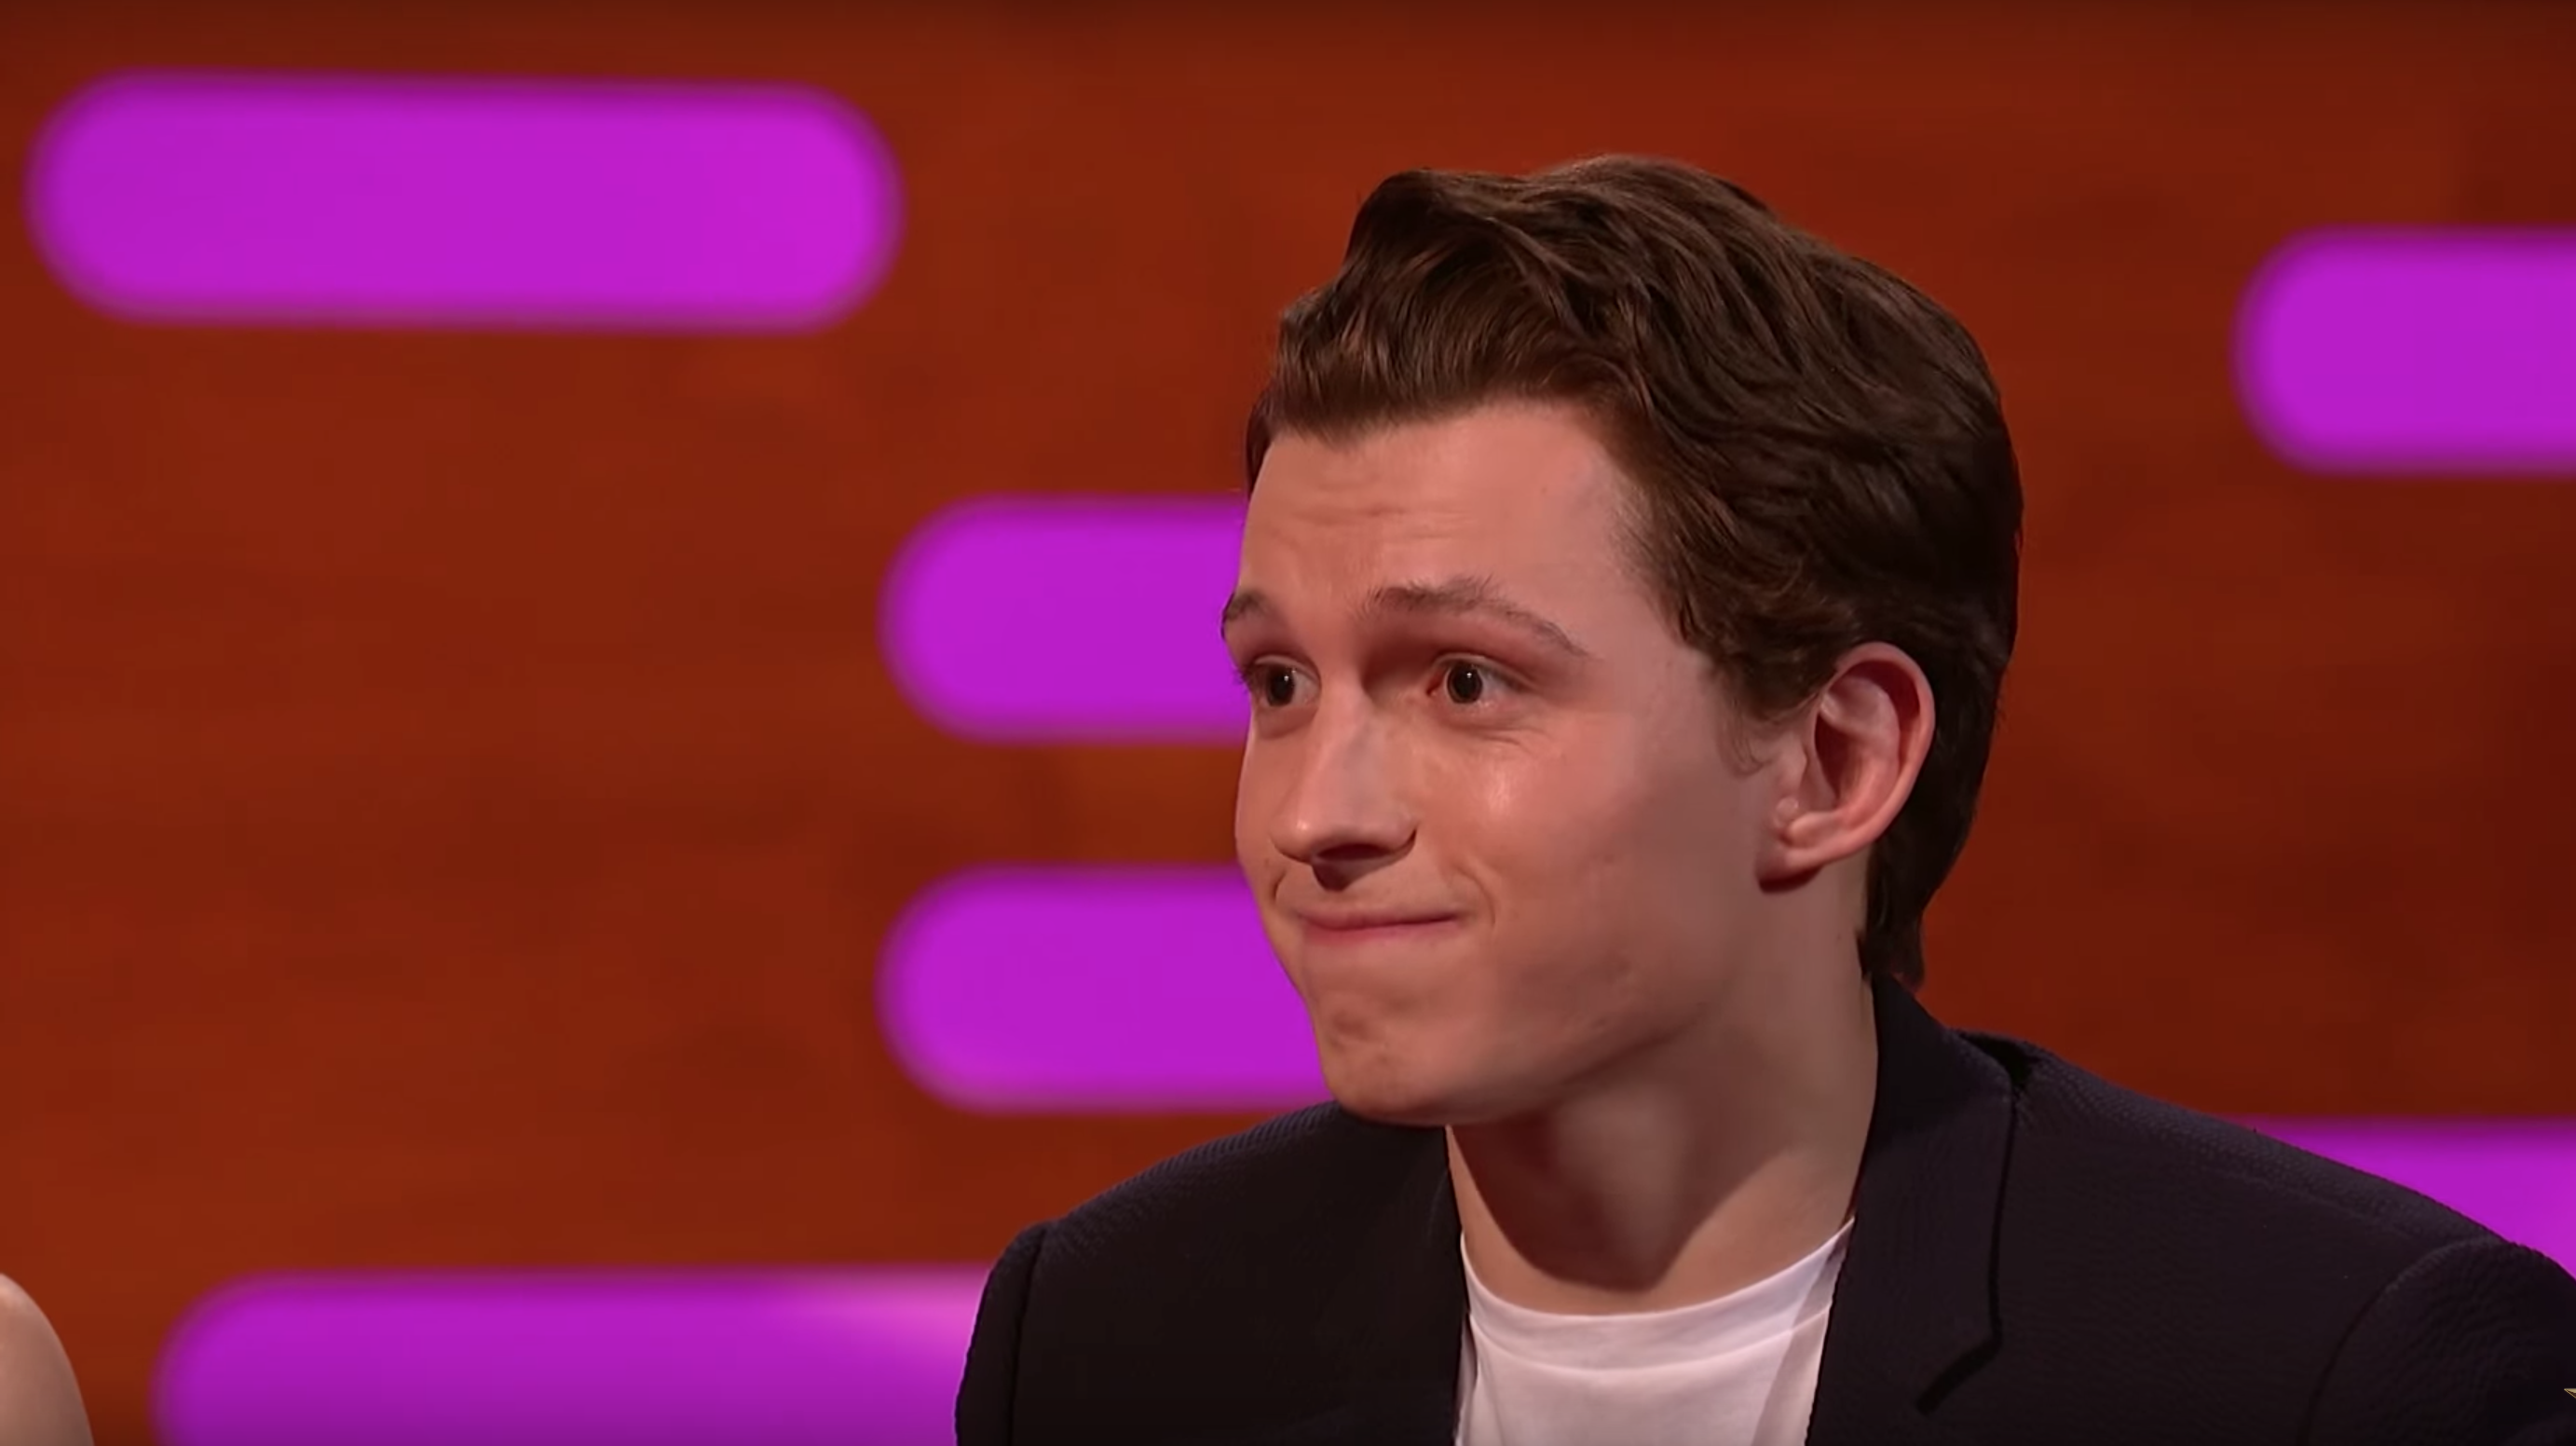 Tom Holland genuinely thought he'd uploaded Avengers: Endgame to Twitter in its entirety